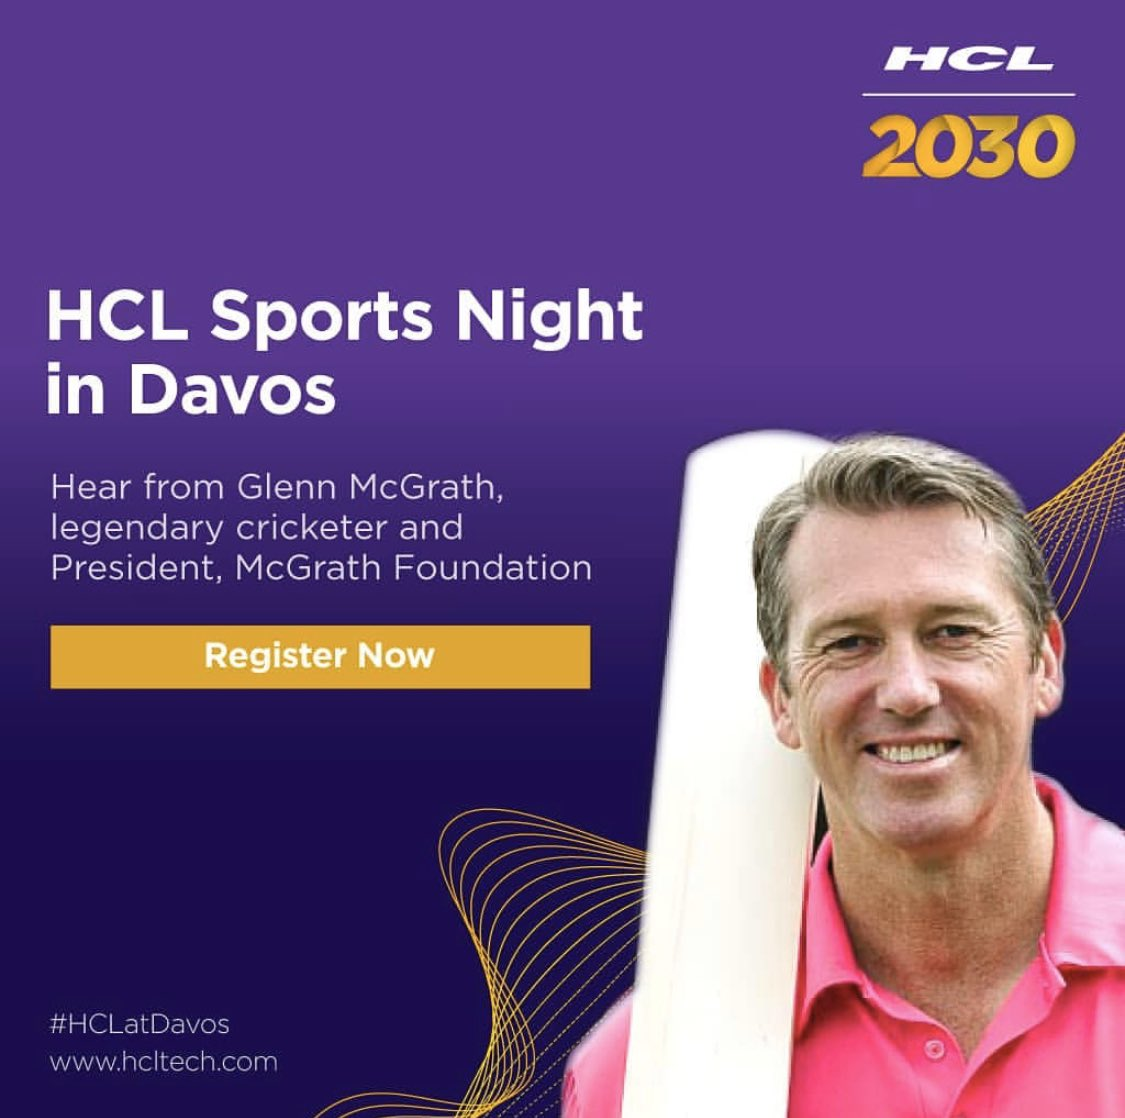 Thrilled to announce that I'll be in conversation with C Vijayakumar, President & CEO, of  @hcltech  on Sports Night in  @Davos . Join us on Jan 21, 18:30 CET  the #HCLPavilion. RSVP now:  #HCLatDavos #wef20